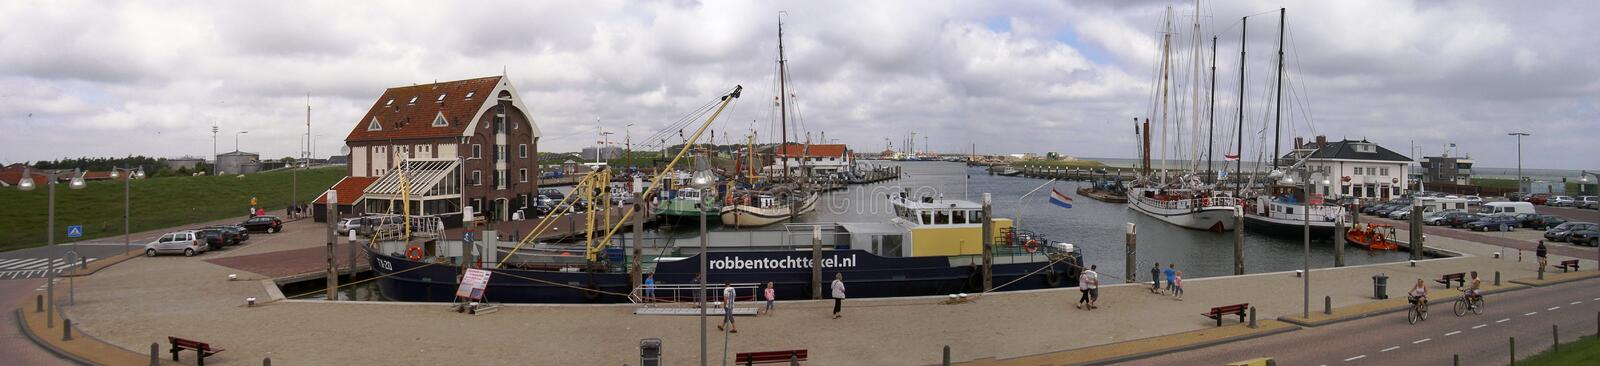 The port of Oudeschild, Netherlands 05.07.2007. Fishing boats moored in the inner harbor of Oudeschild royalty free stock photography